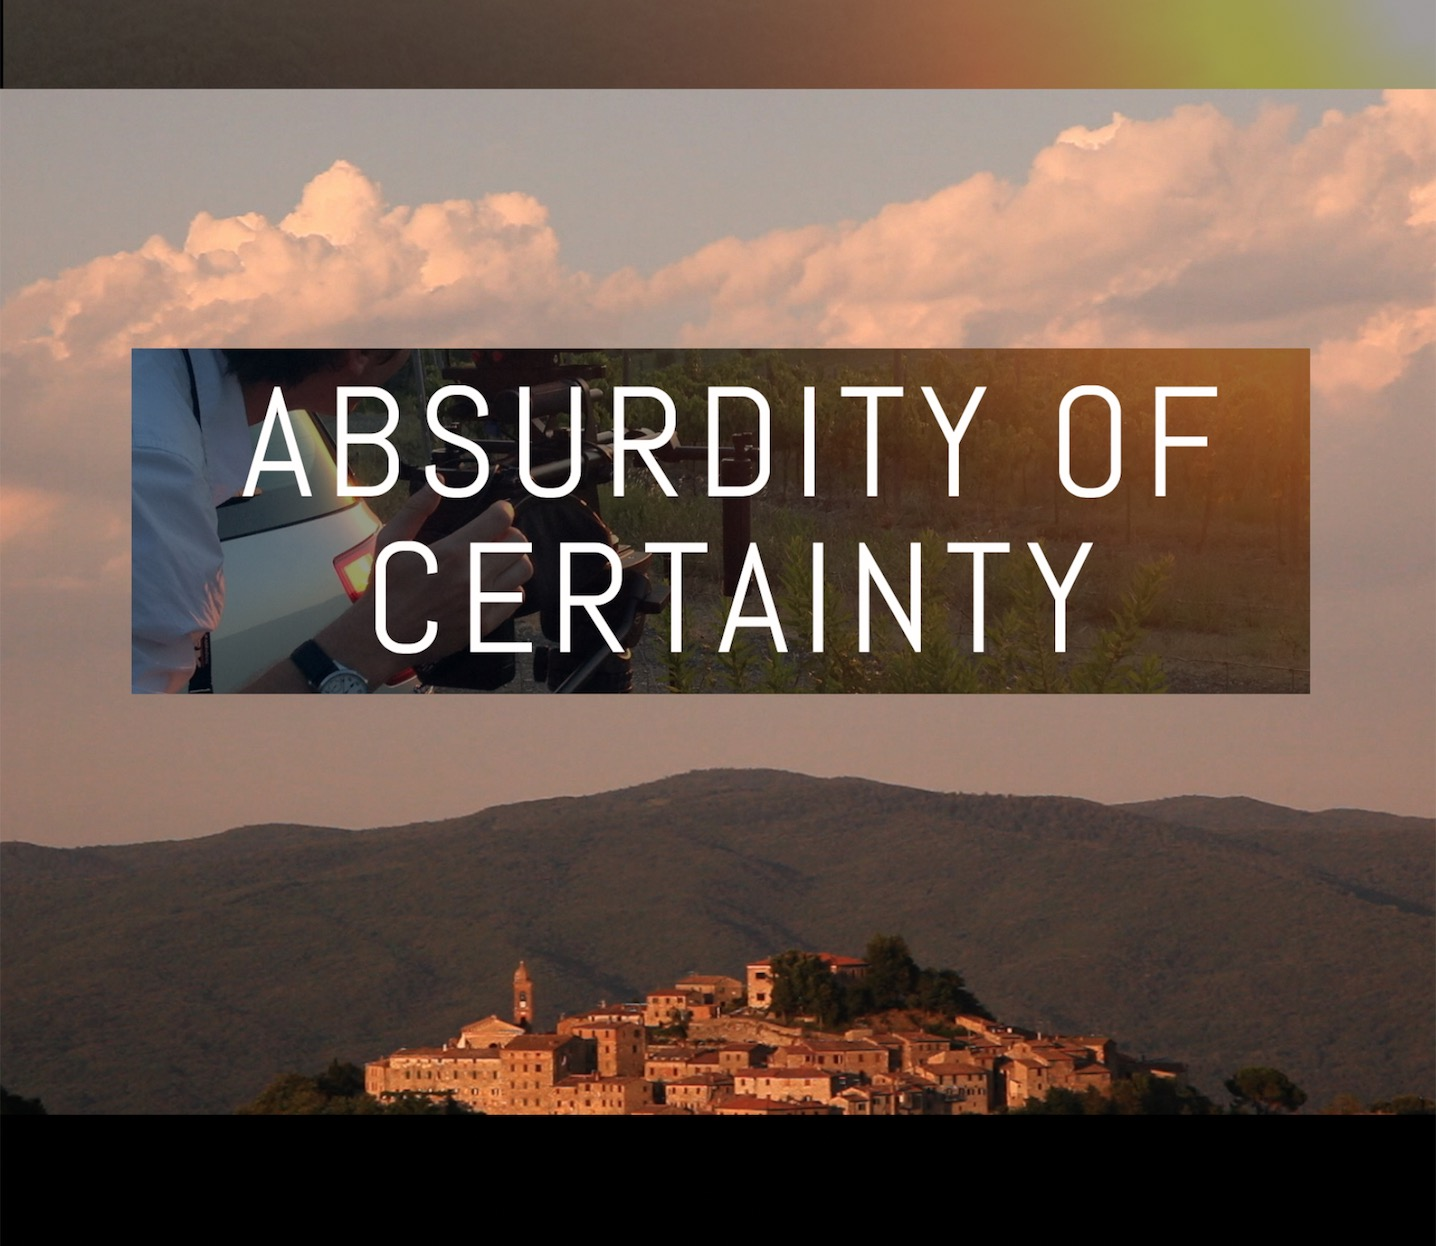 Absurdity of Certainty